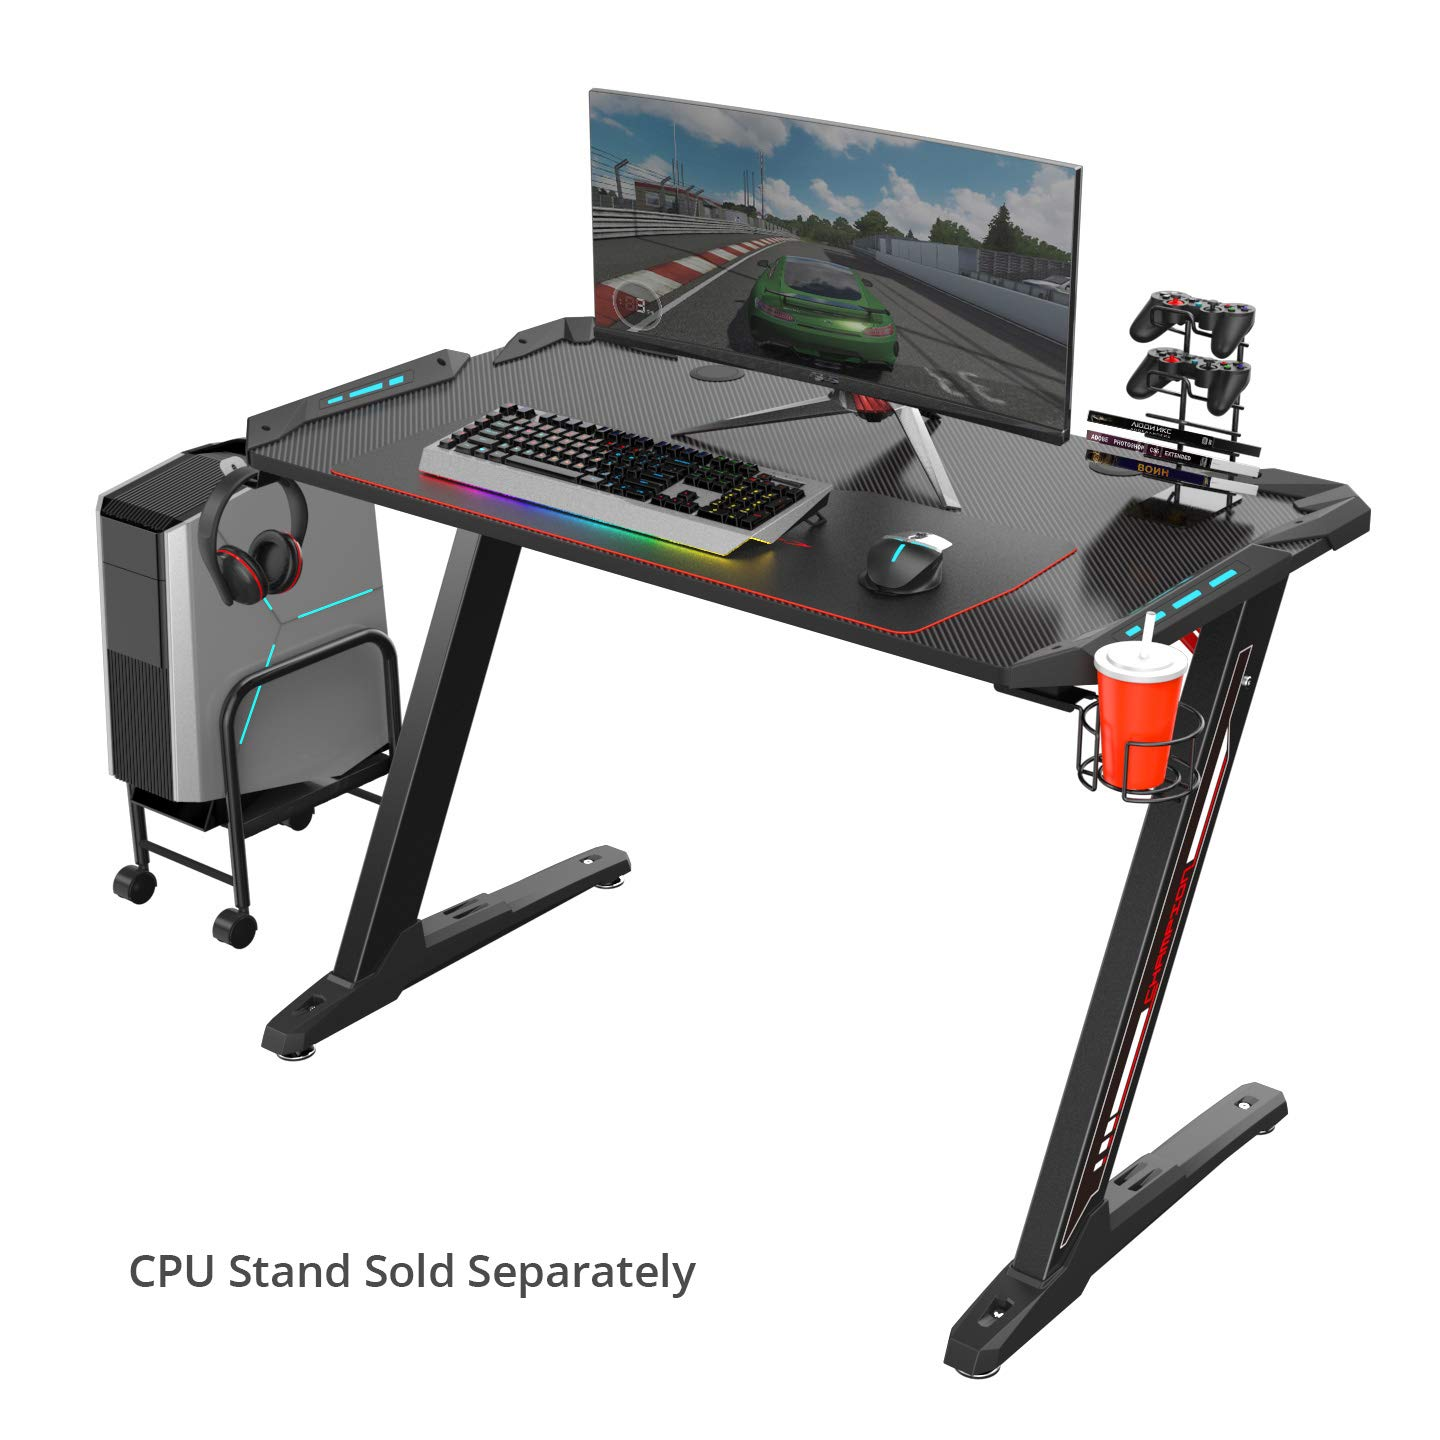 Eureka Ergonomic Z1-S Gaming Desk 44.5'' Z Shaped Office PC Computer Gaming Desk Gamer Tables Pro with LED Lights Controller Stand Cup Holder Headphone Hook & Free Mousepad - Black by Eureka Ergonomic